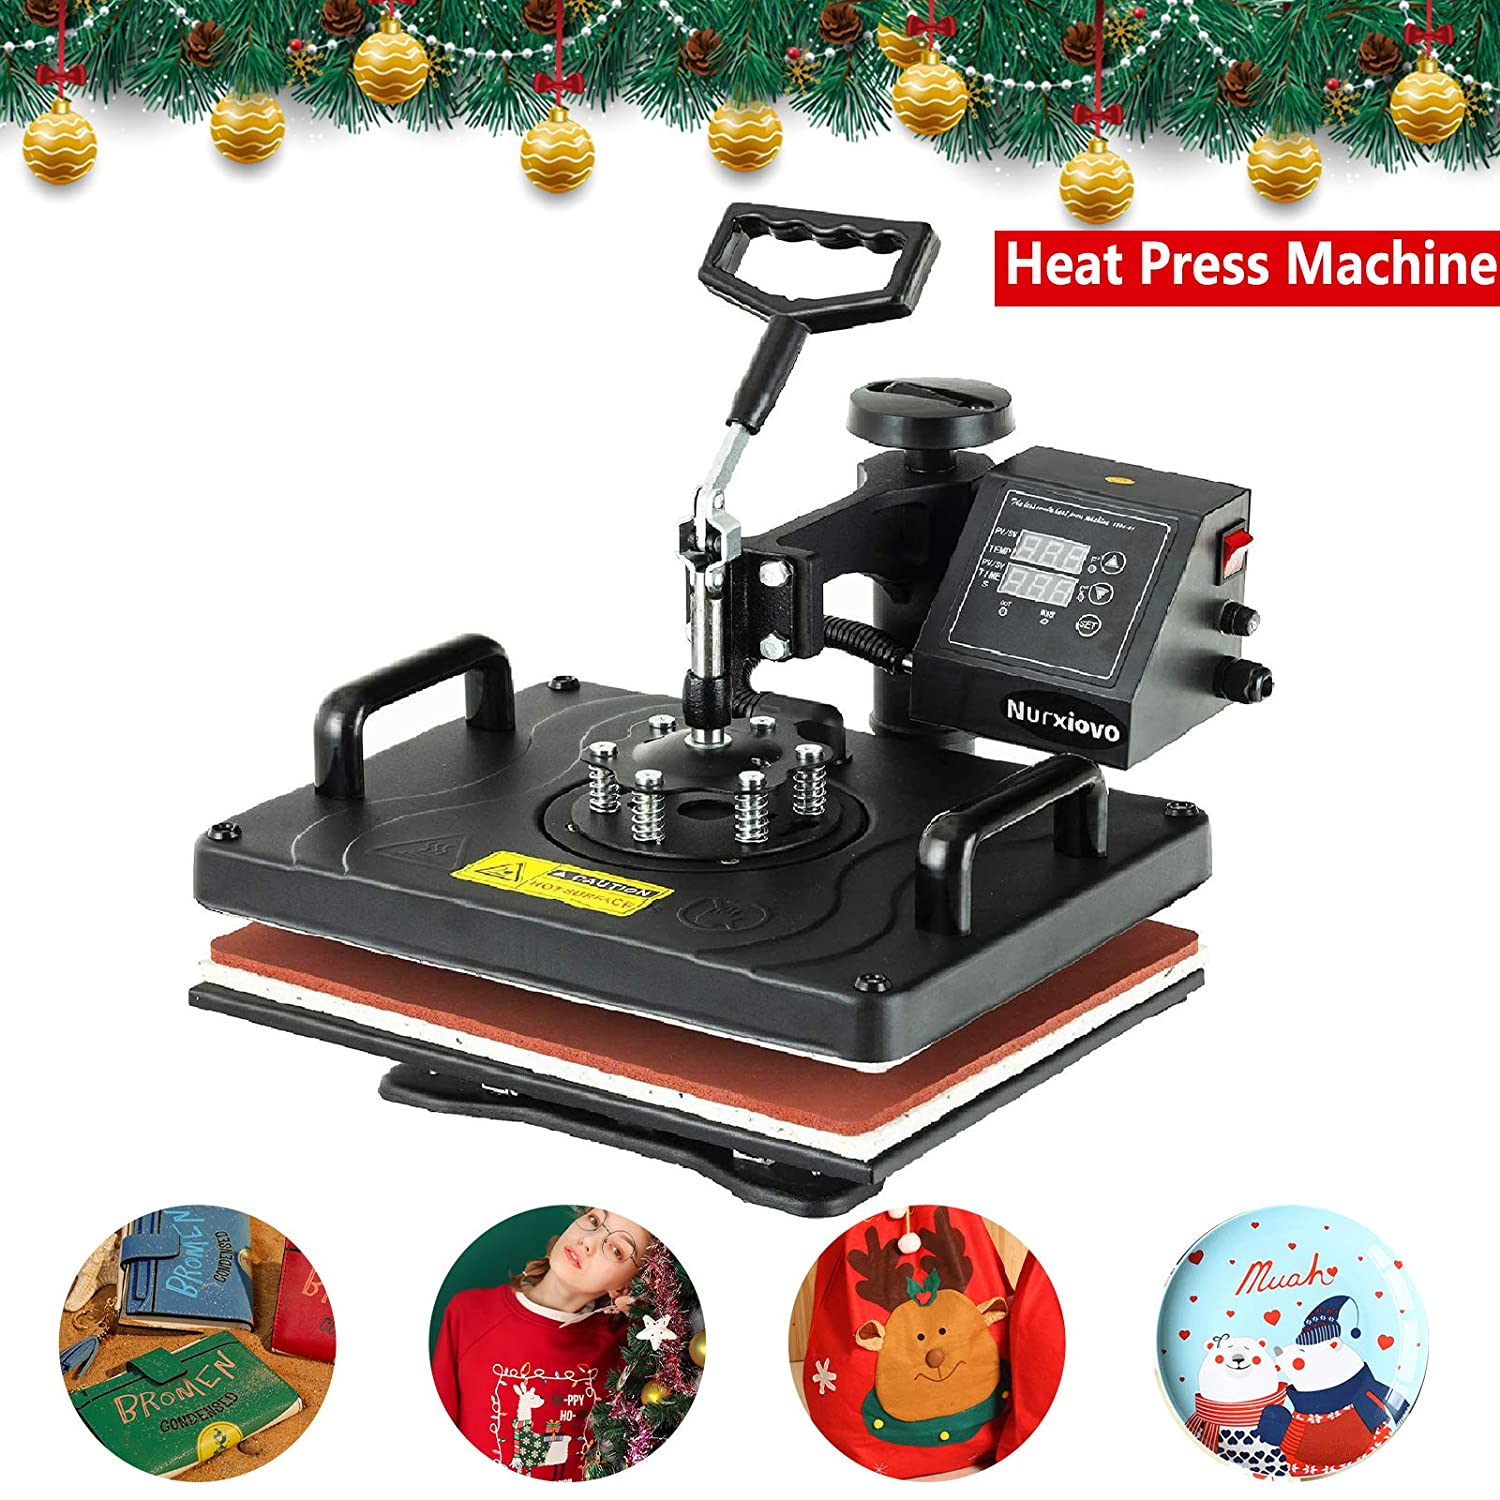 Nurxiovo 12x15 in Heat Press Machine,360 Degree Swing Away Commercial Heat Transfer Machine,Hot Pressing Vinyl Digital Sublimation for T-Shirt,Hat,Mouse Pad,Phone Case,Cotton,Bags,Tablecloth